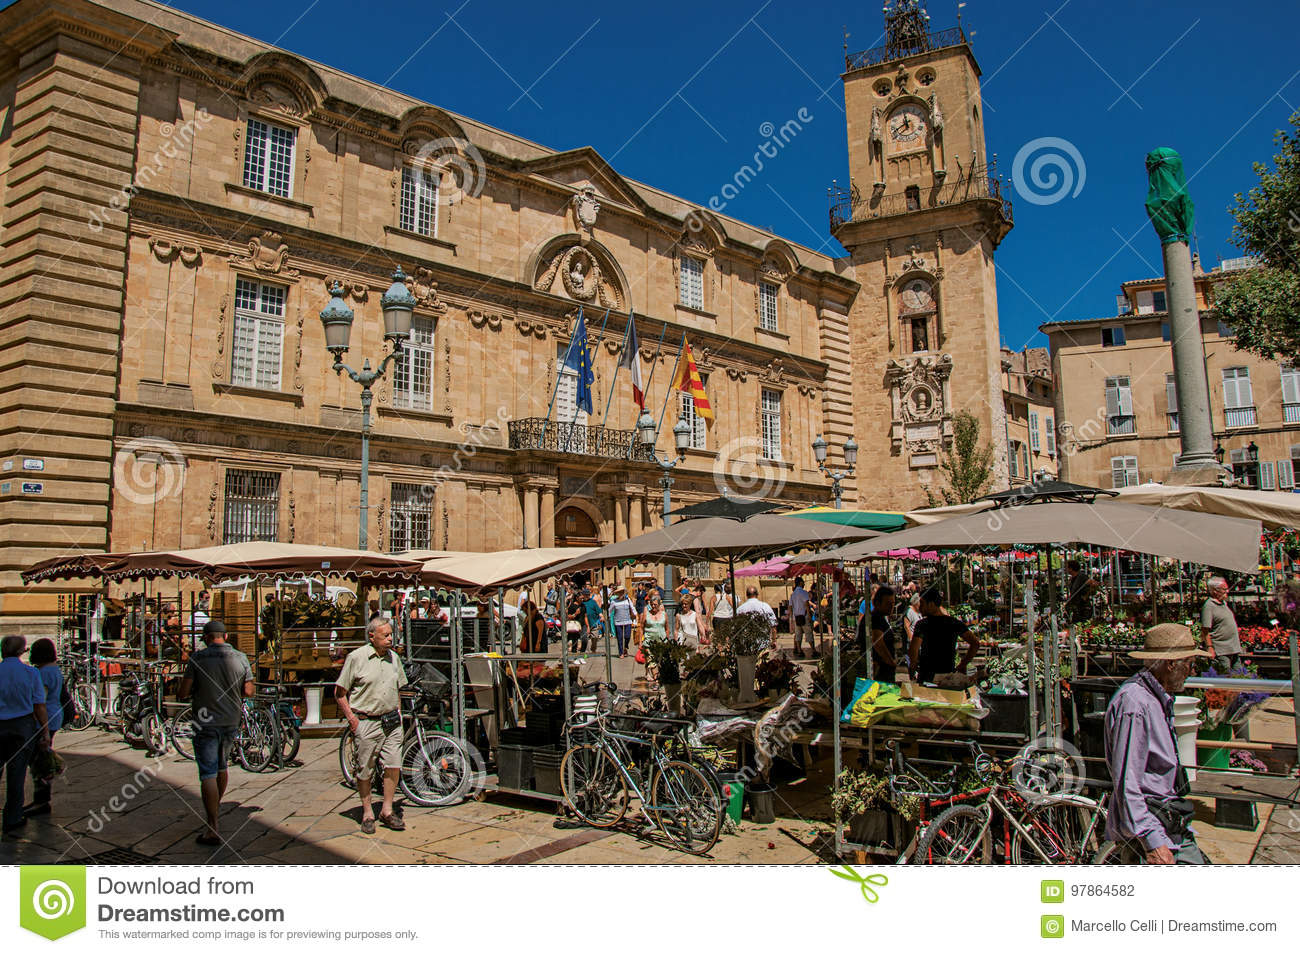 Square with market stall, people and clock tower in Aix-en-Provence,